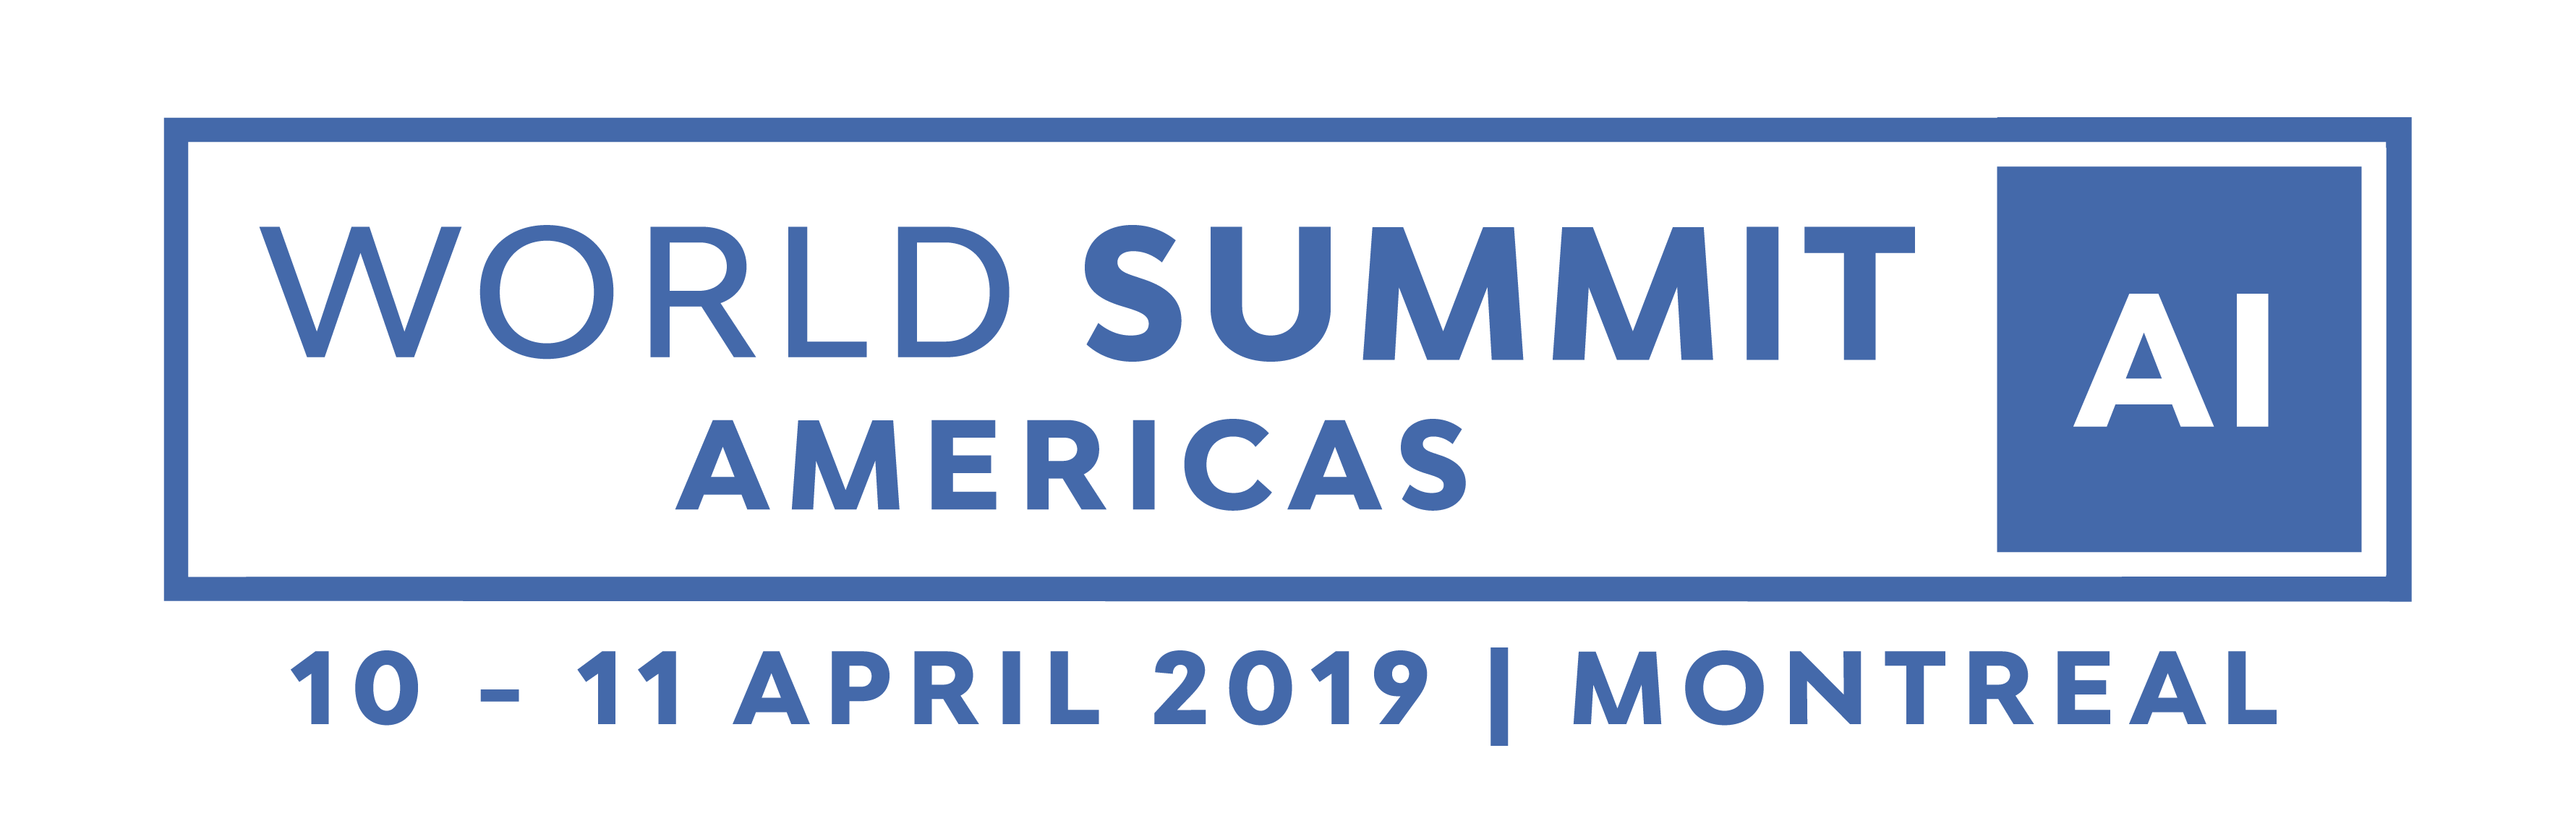 WSAI_Americas Logo_with Date_BOLD